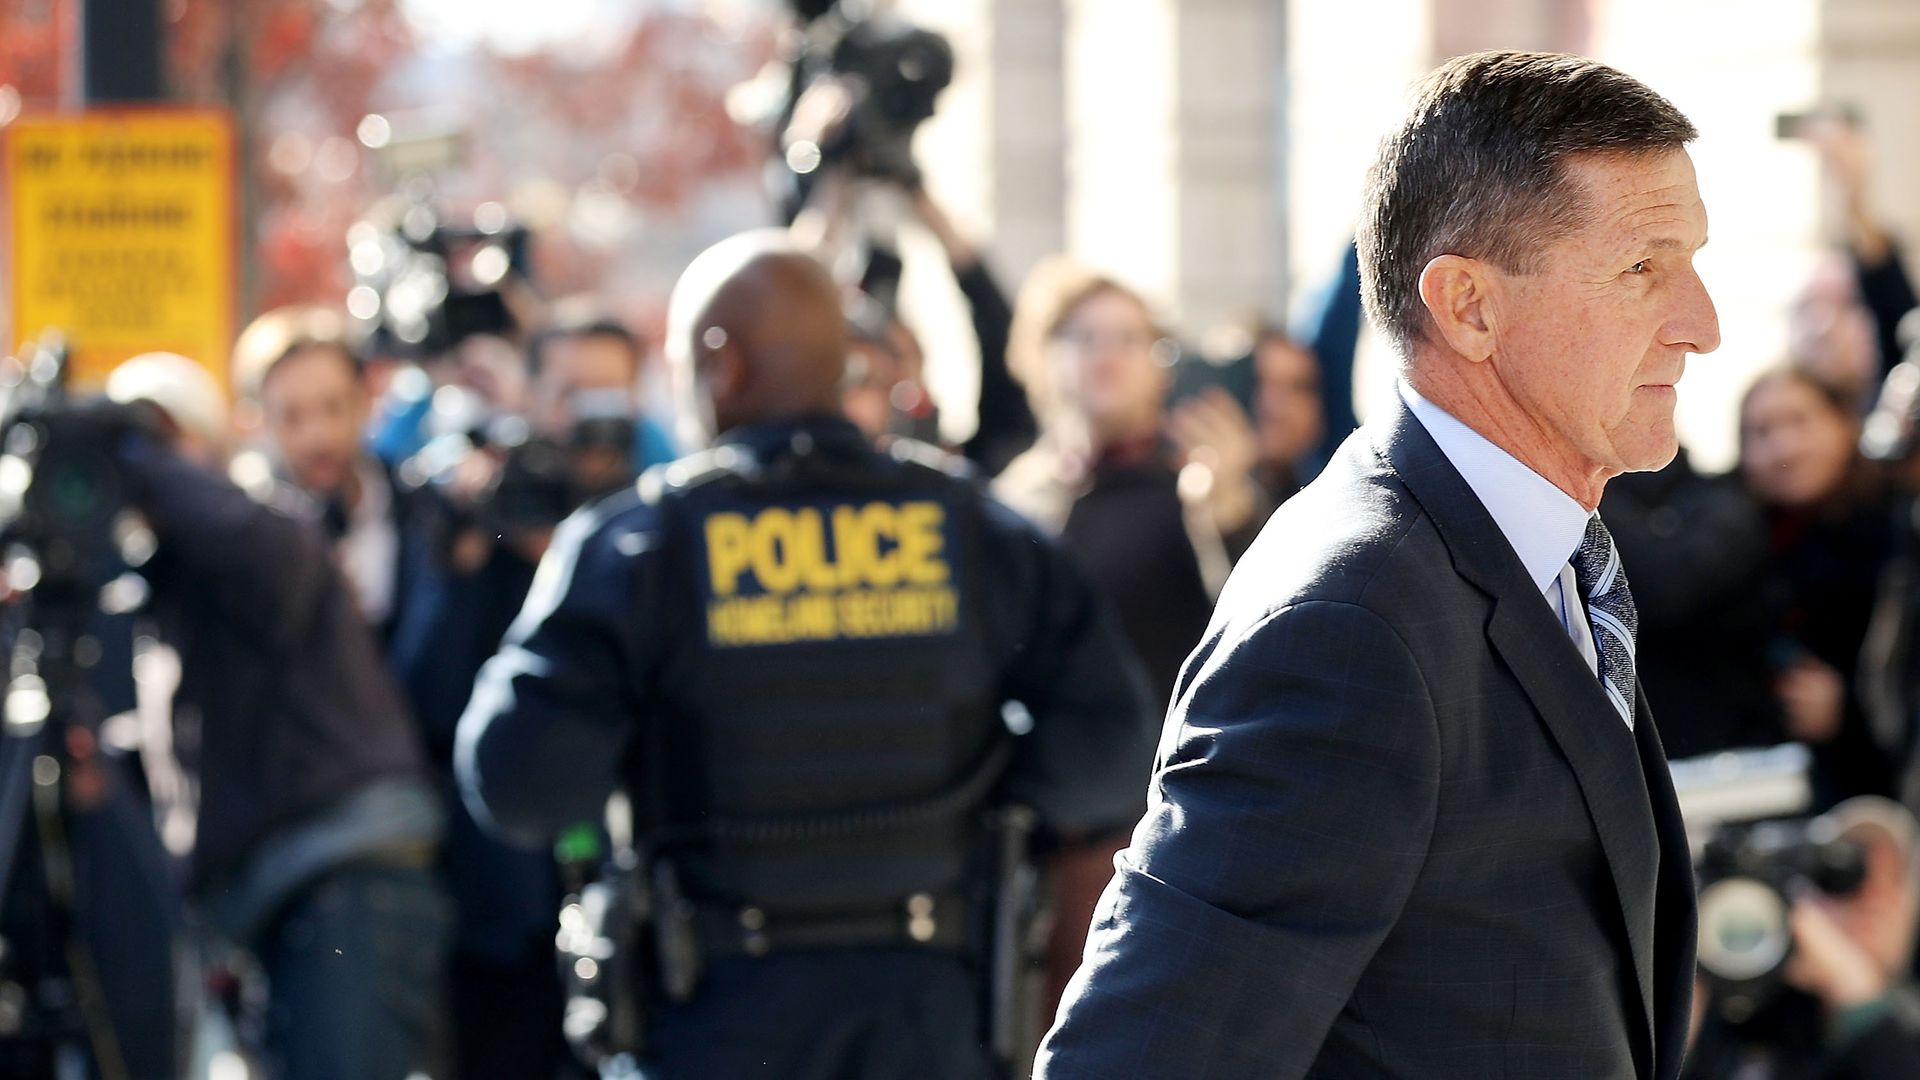 Michael Flynn, former national security advisor to President Trump, arrives for his plea hearing at the Prettyman Federal Courthouse in December. Photo: Chip Somodevilla/Getty Images